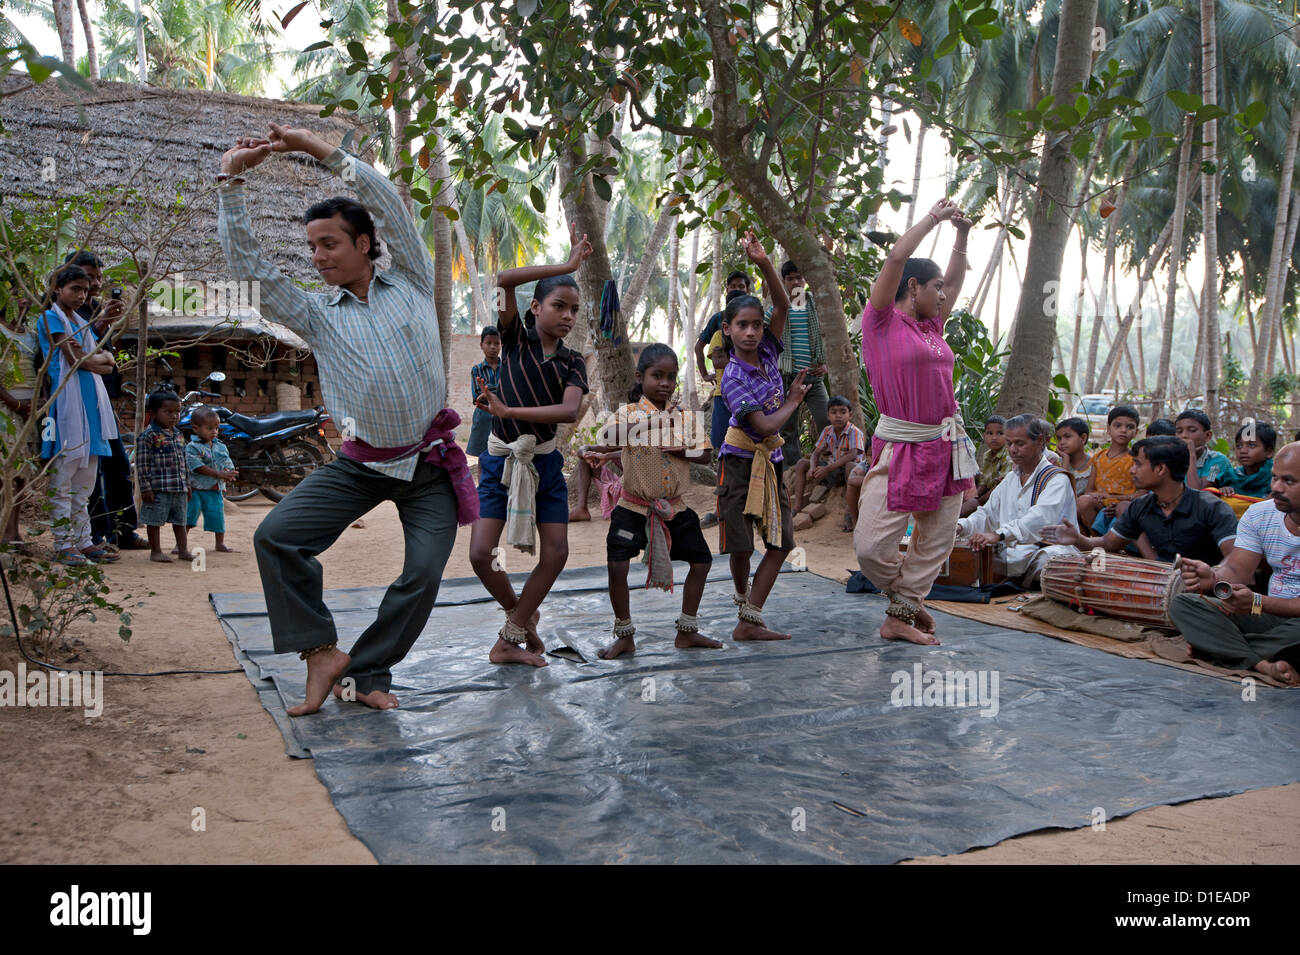 A demonstration of traditional Gotipua (single boy) temple dancing taking place in musician's village, Ballia, - Stock Image